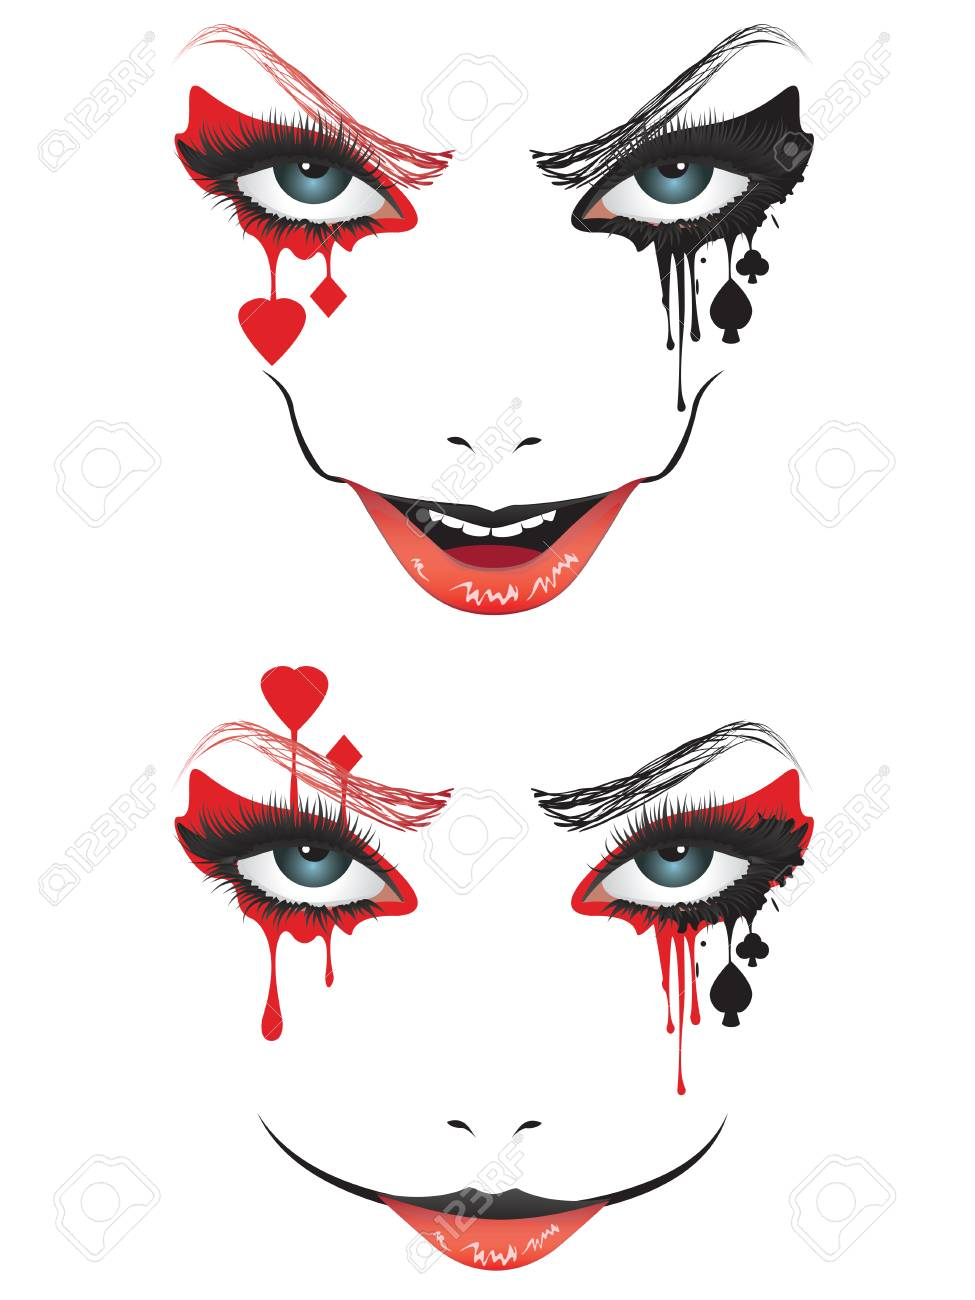 Dessin Visage Halloween.Cartoon Face With Creepy Make Up For Halloween Royalty Free Cliparts Vectors And Stock Illustration Image 89267202